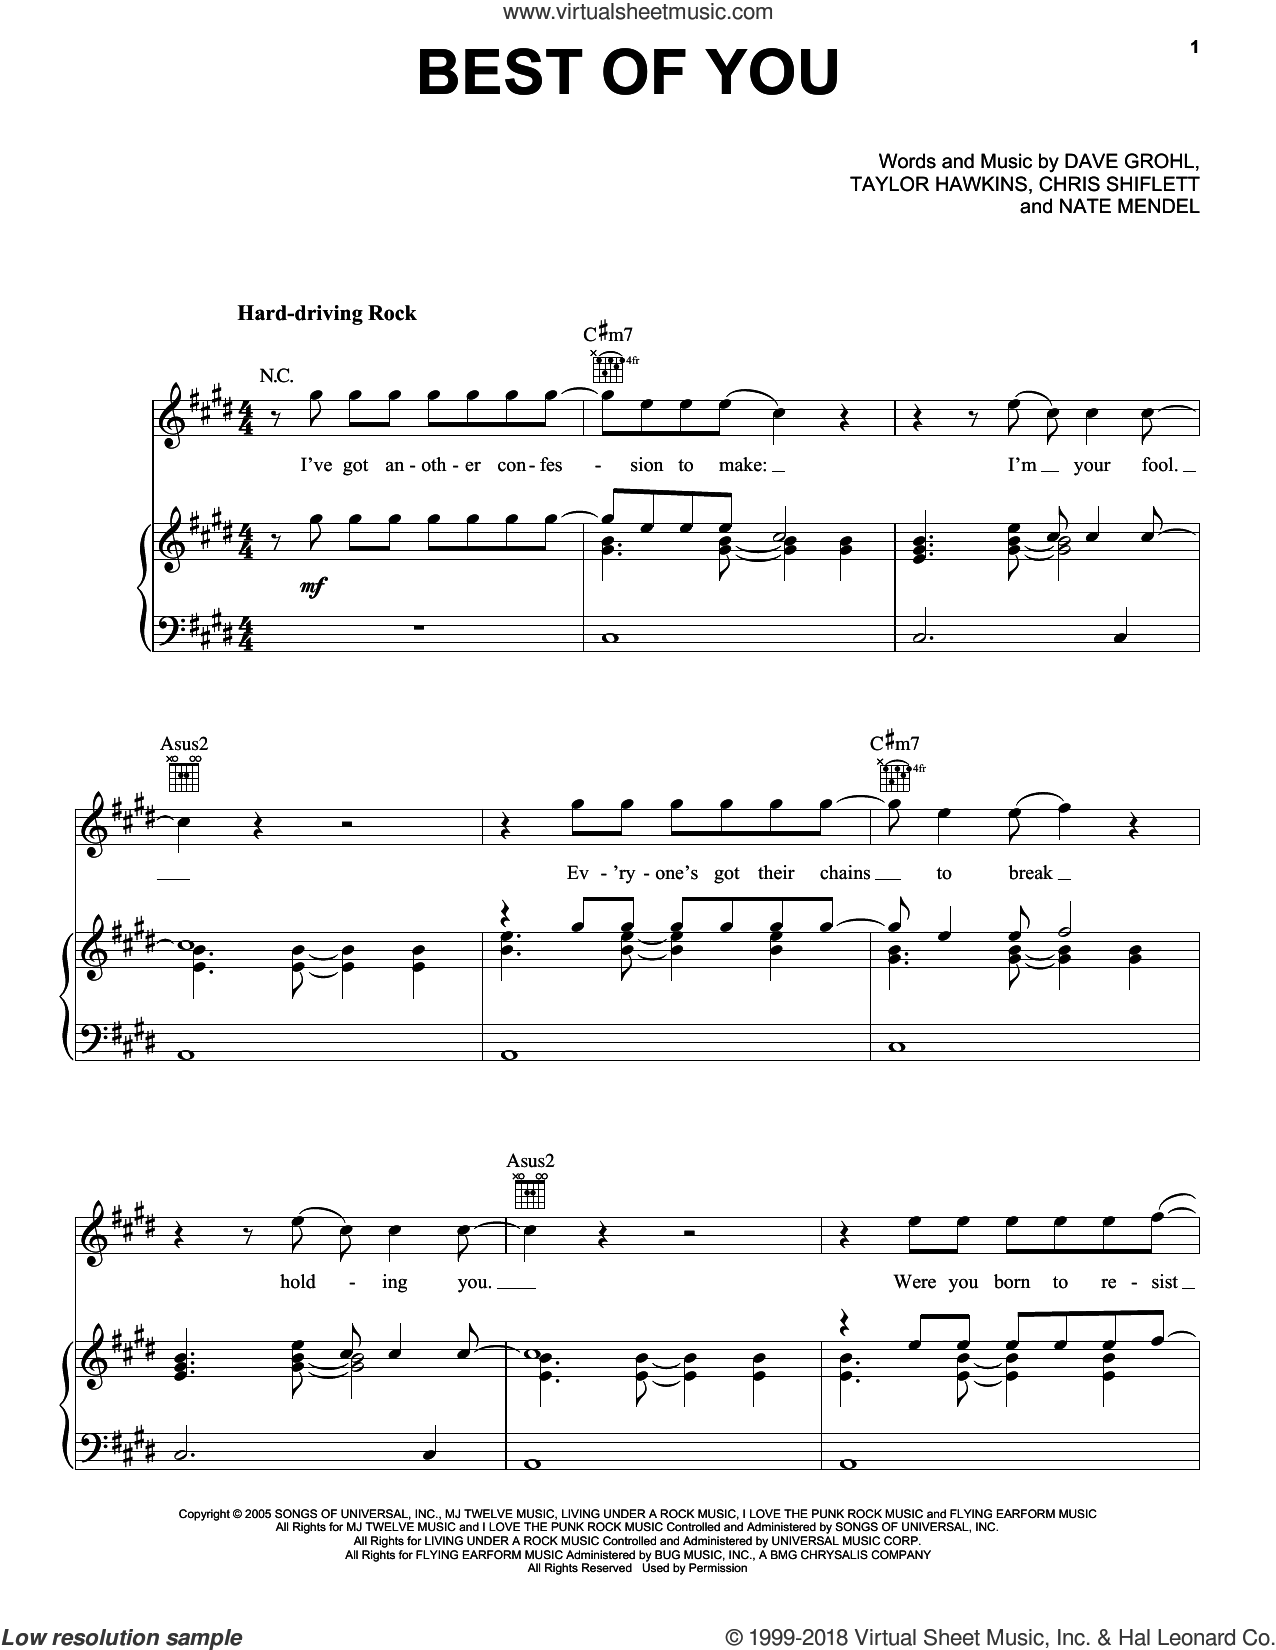 Best Of You sheet music for voice, piano or guitar by Foo Fighters, Chris Shiflett, Dave Grohl, Nate Mendel and Taylor Hawkins, intermediate skill level